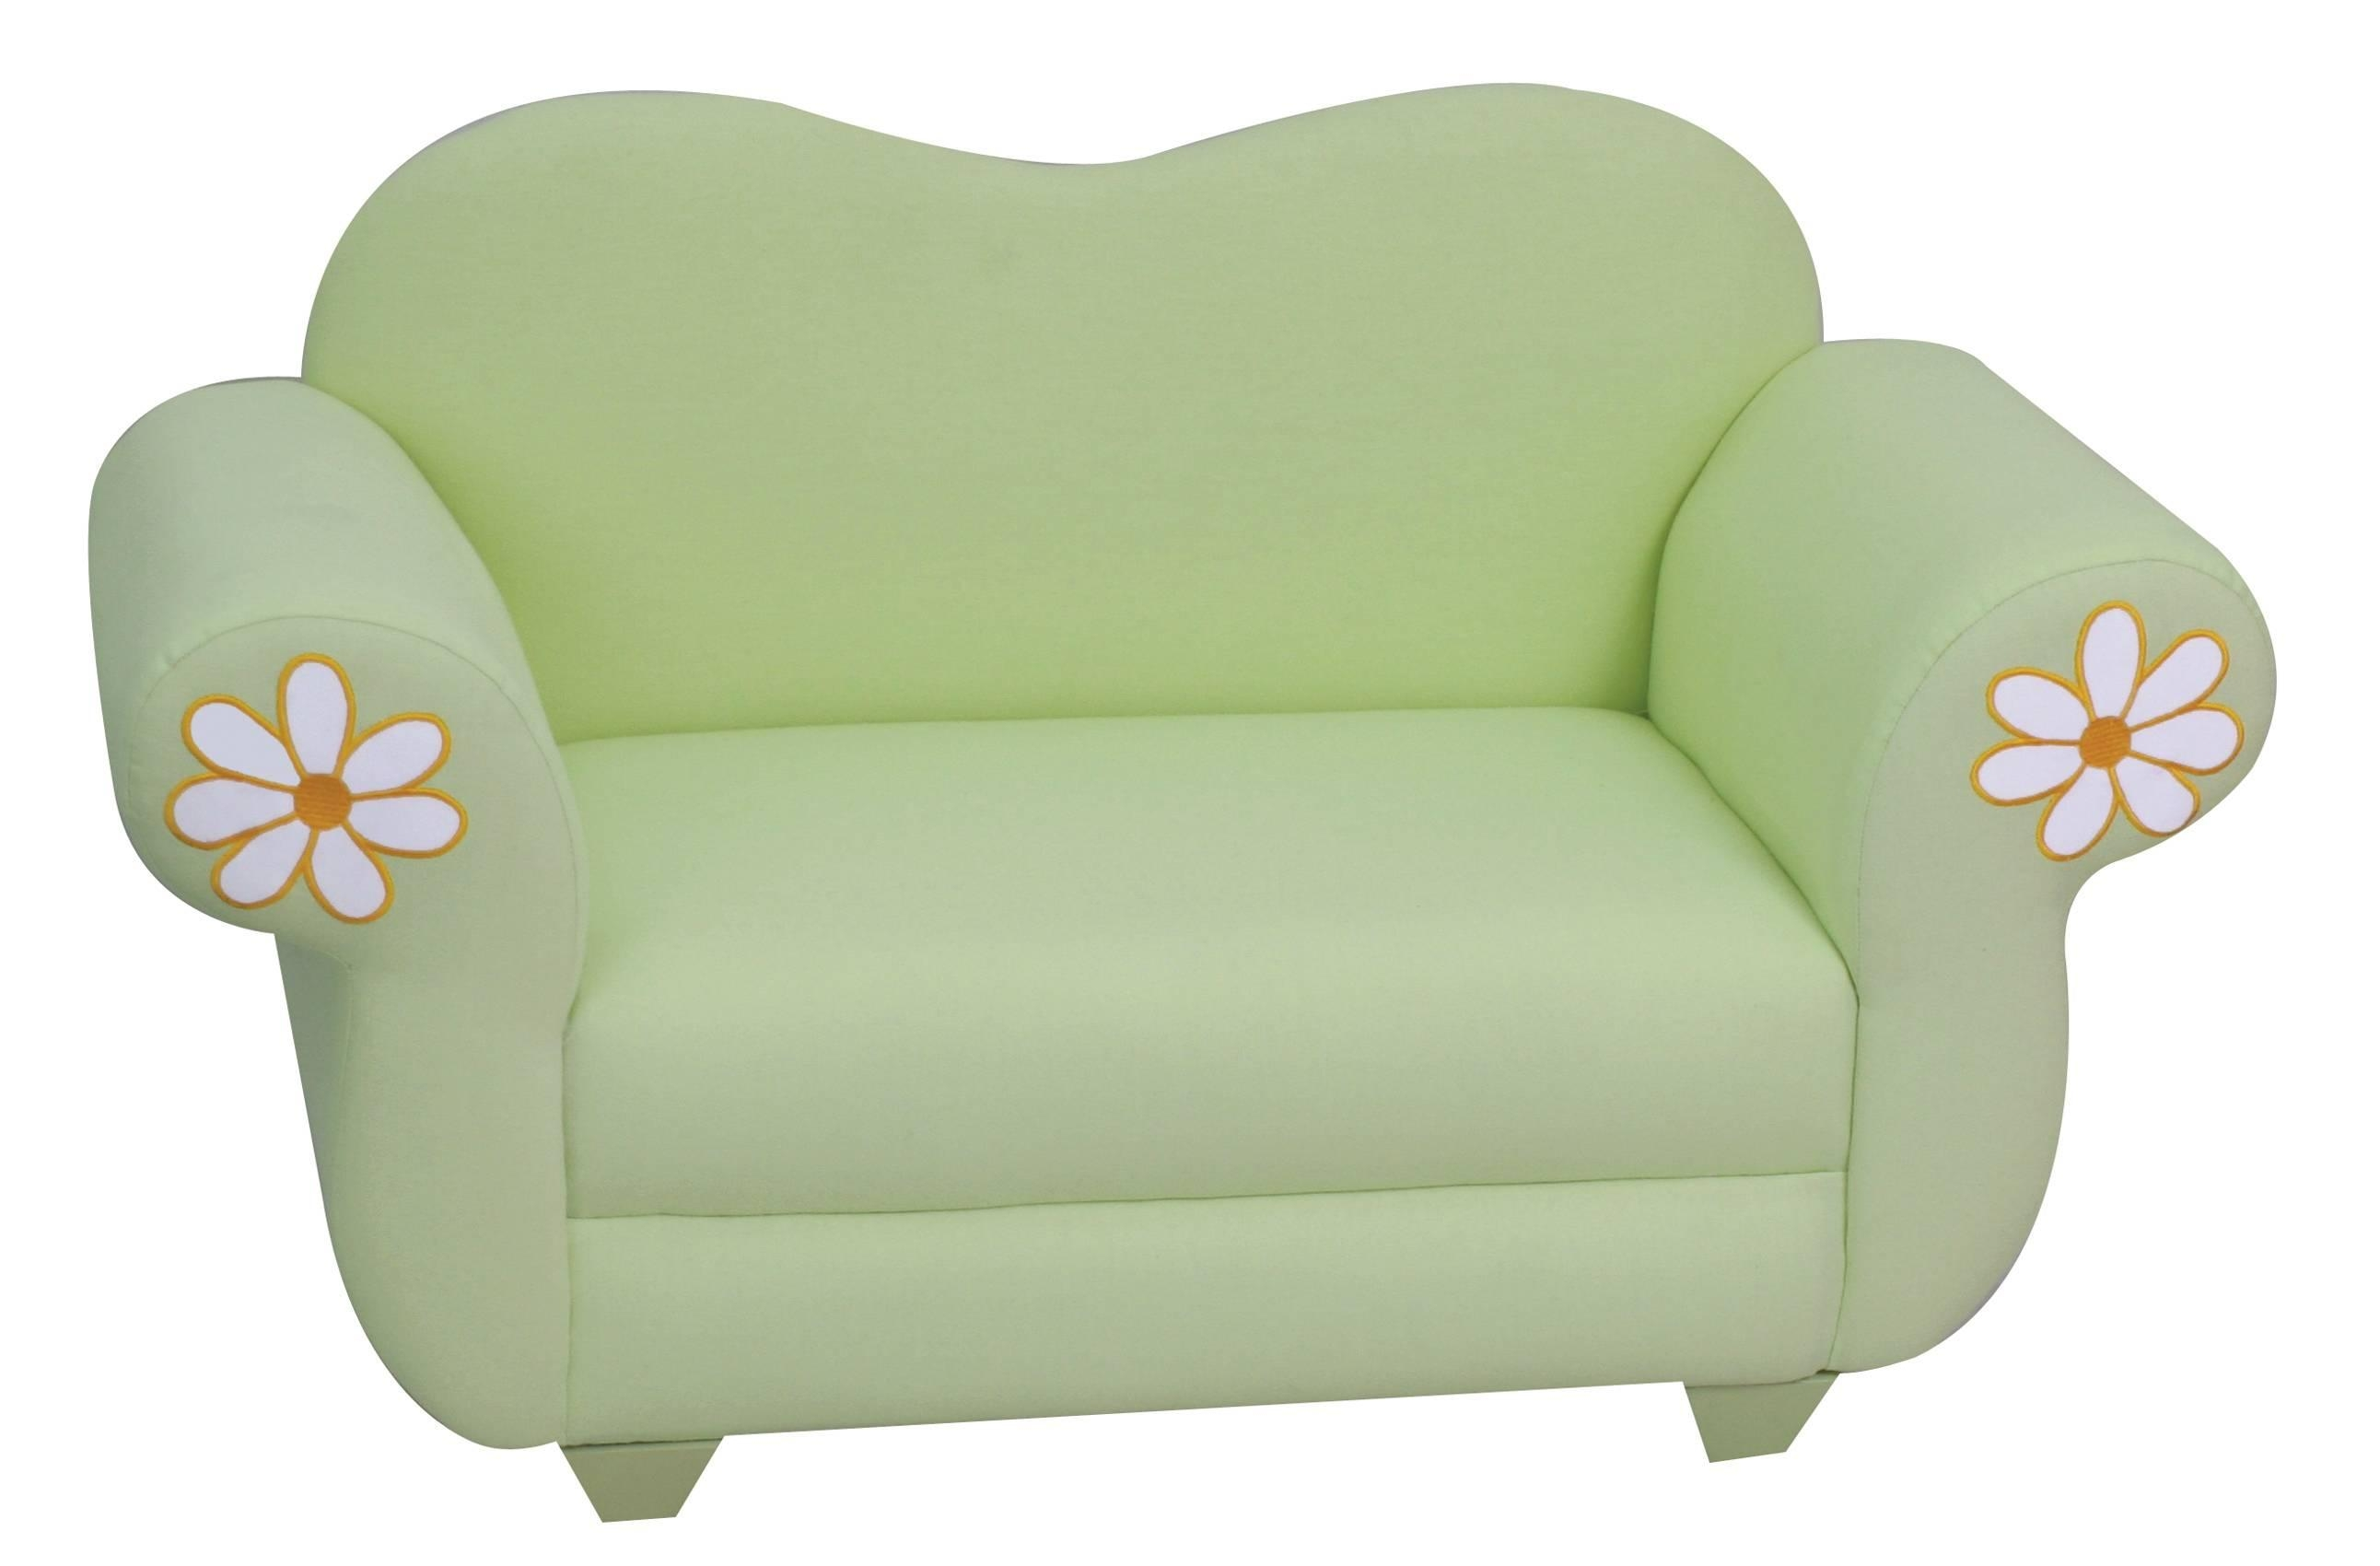 Kids Sofa Chair Fun Furnishings 3 Piece Kids Sofa Chair And Within Children Sofa Chairs (View 7 of 22)